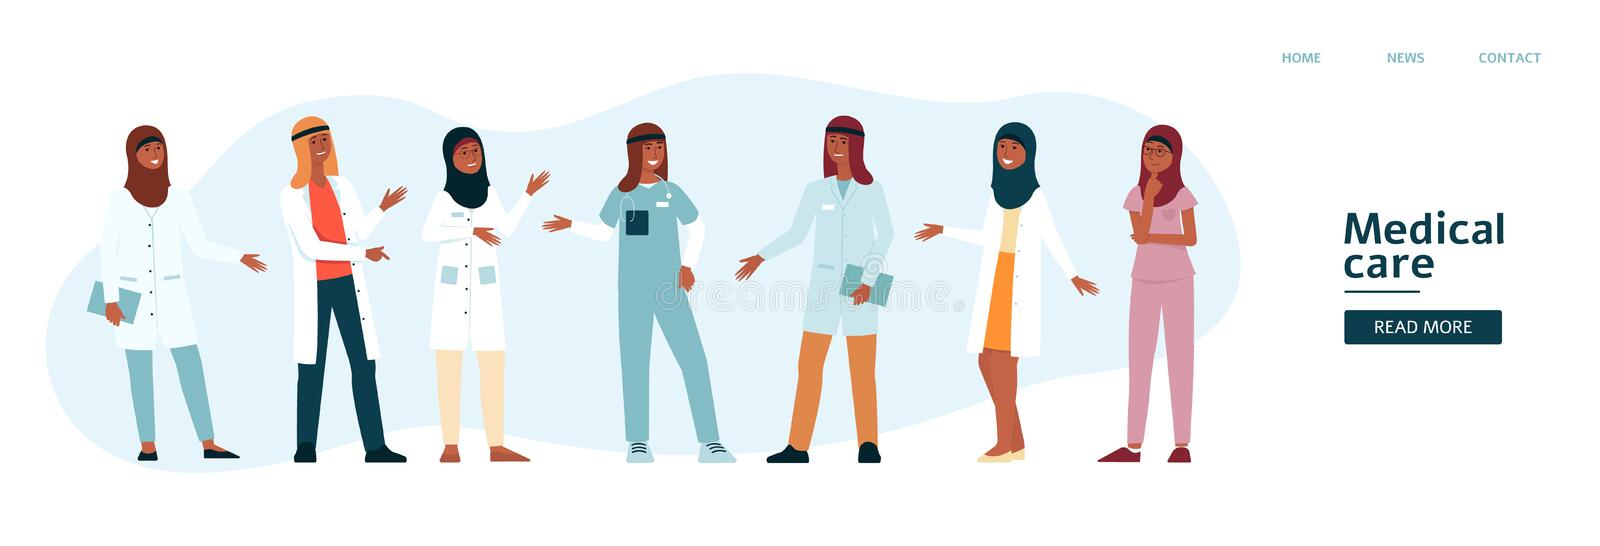 Website template with arabian medical team cartoon style royalty free illustration